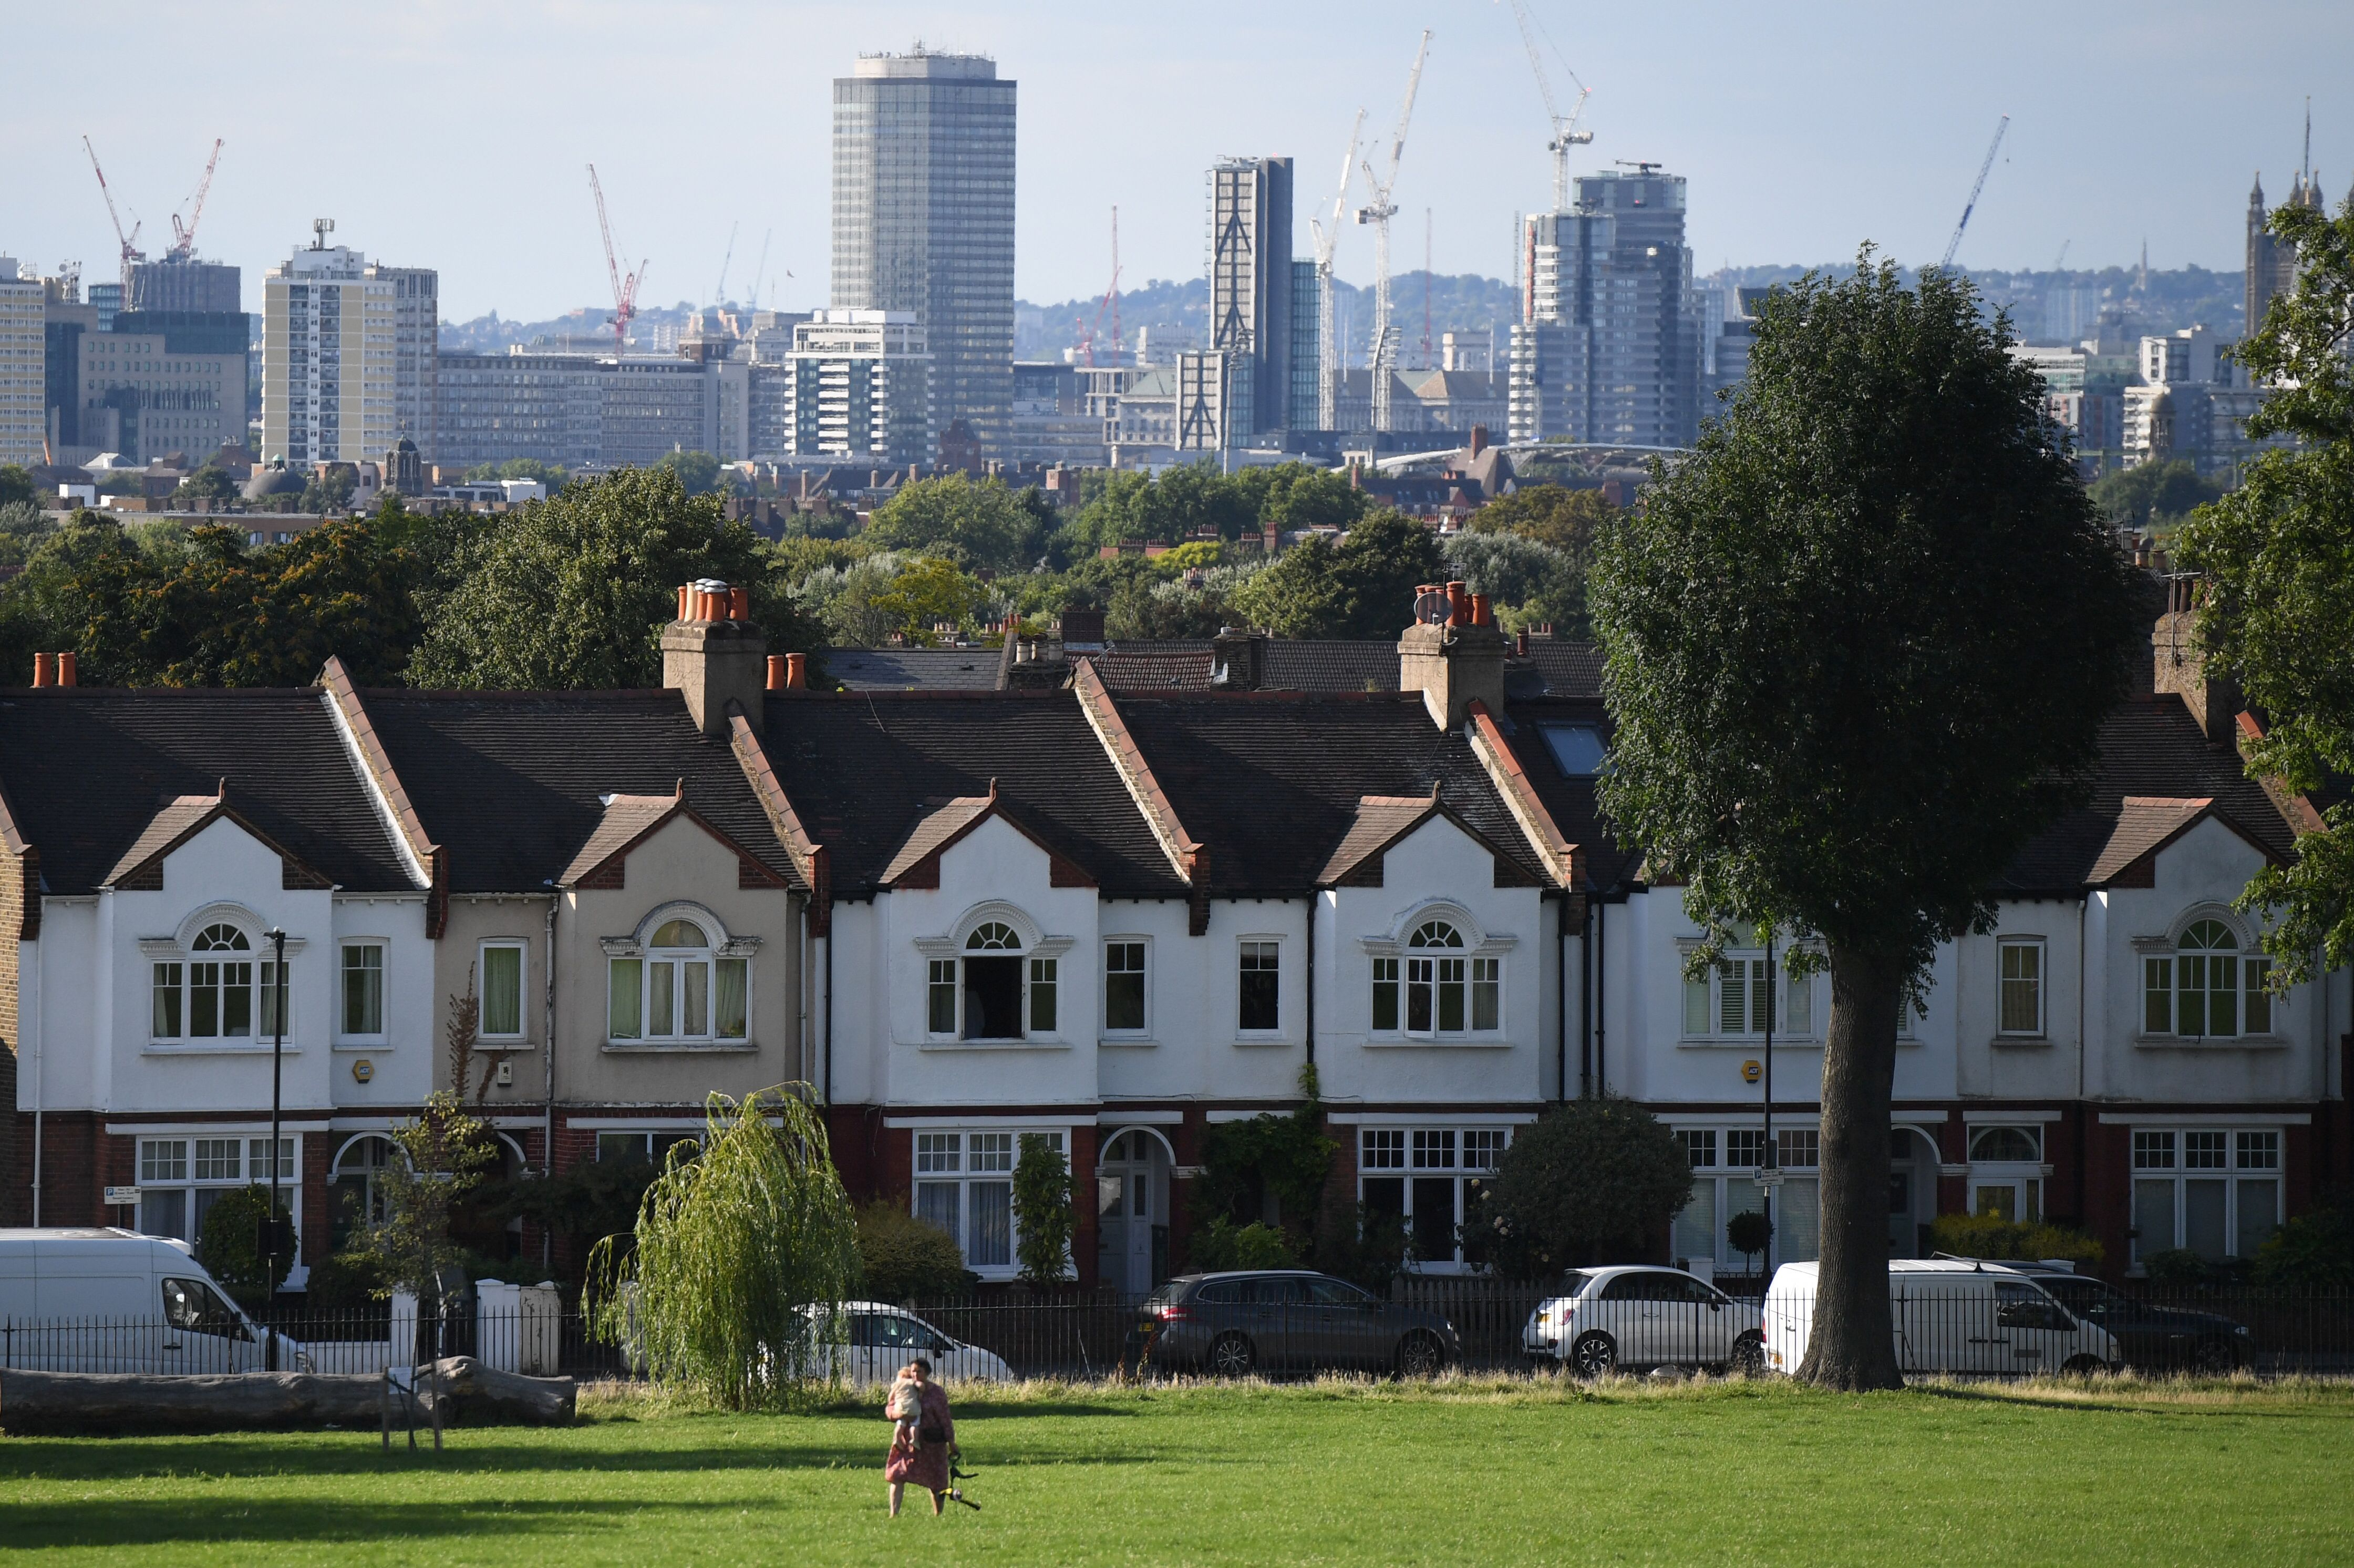 House prices grow nearly three times quicker than salaries since 2008 - CityAM